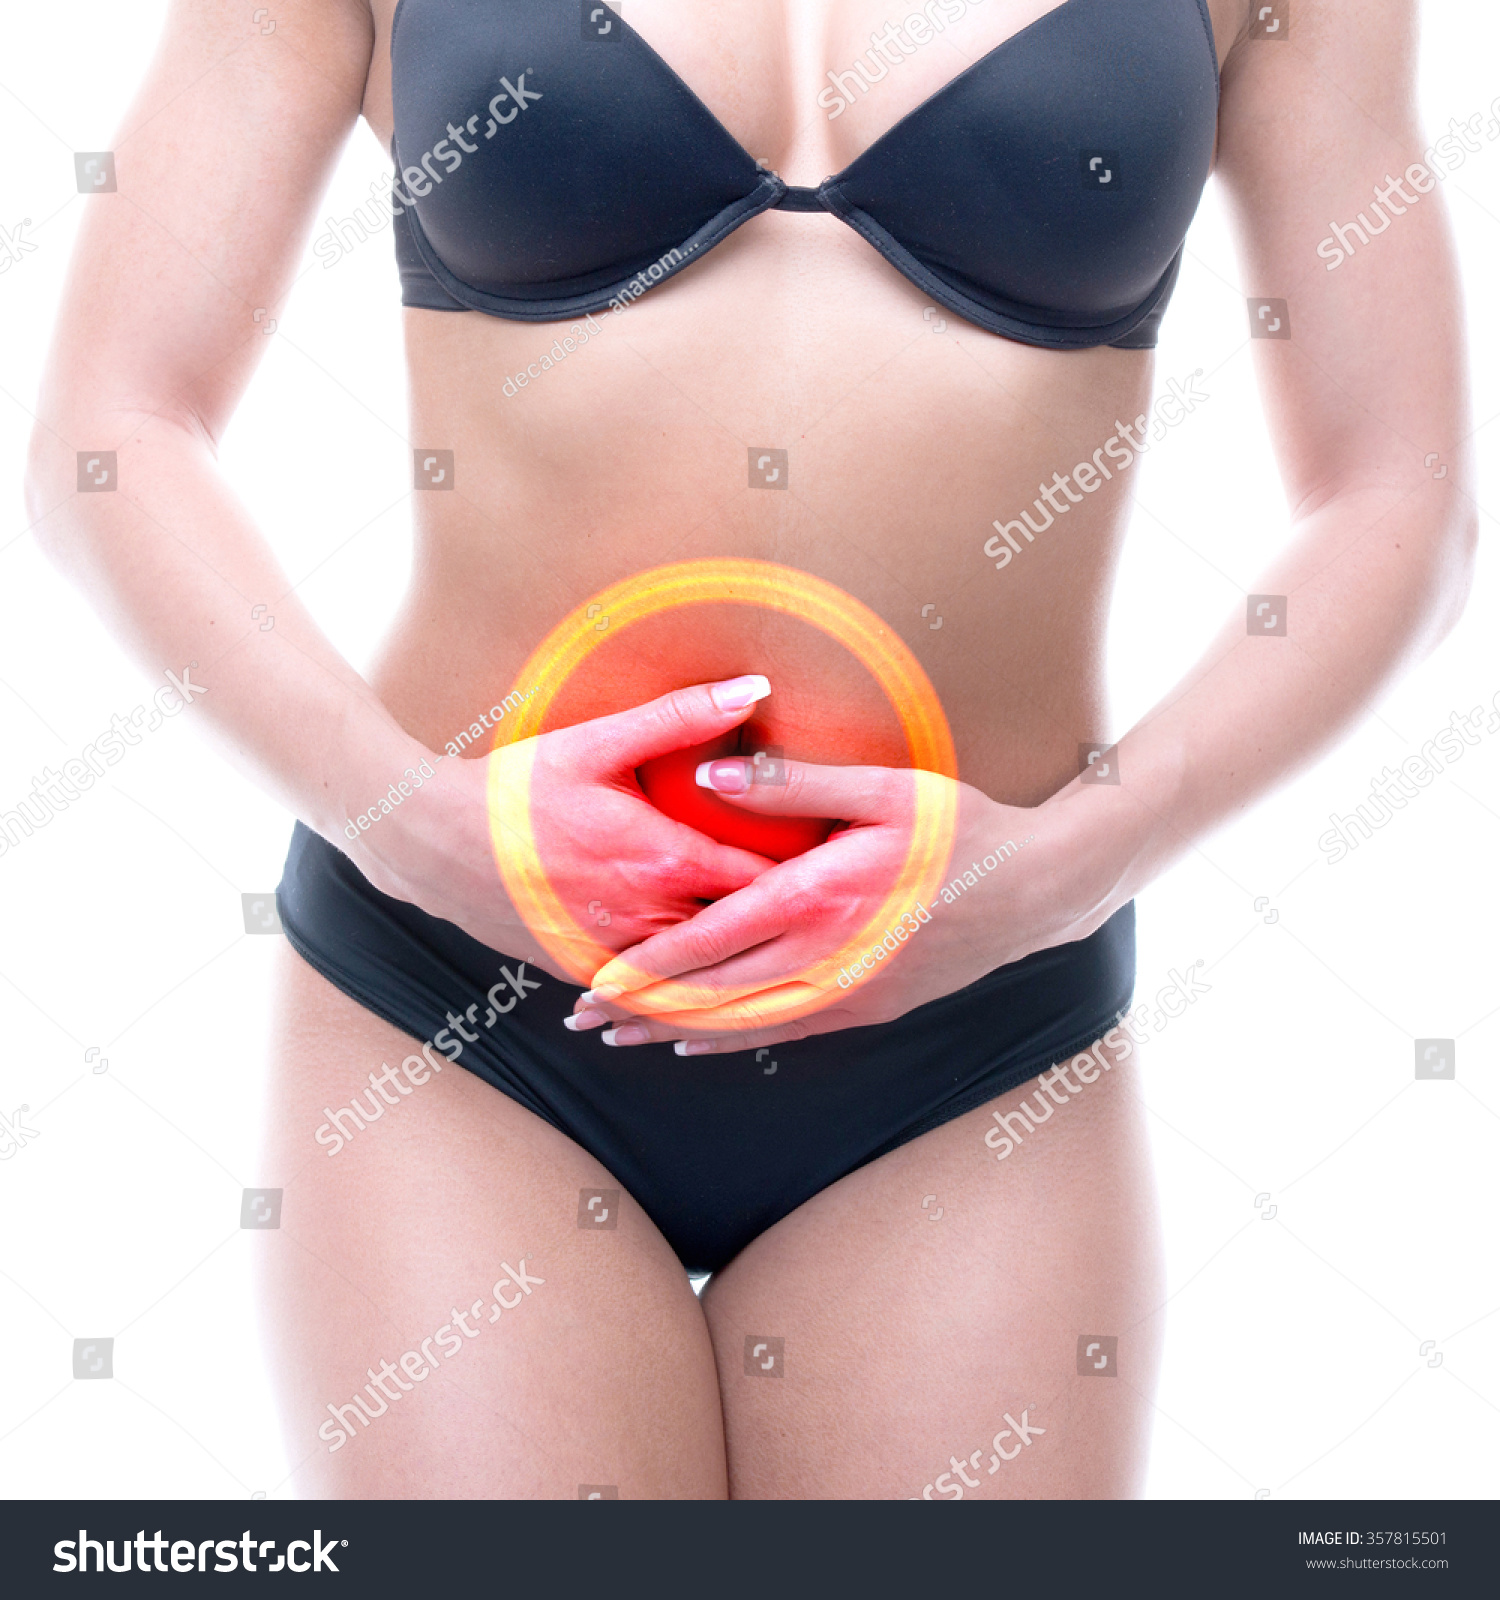 Menstruation Female Pain Periods Real Female Stock Photo (Edit Now ...